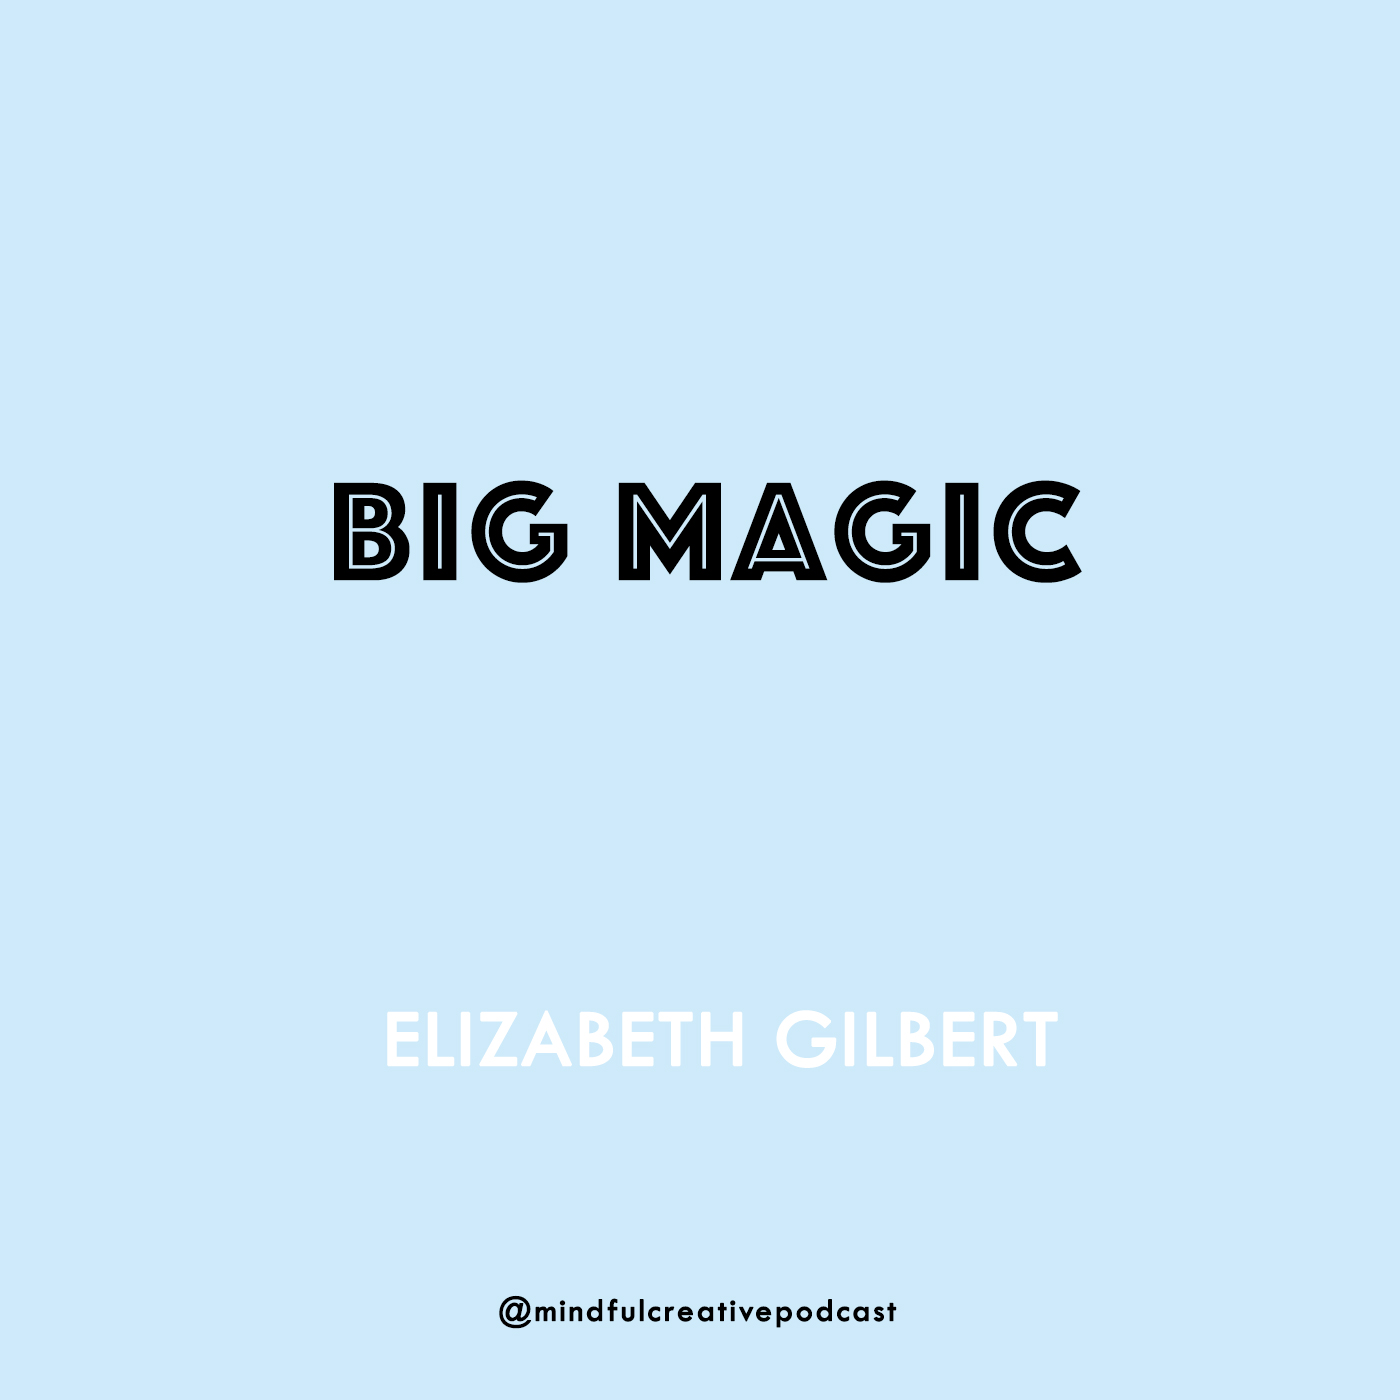 Big Magic Elizabeth Gilbert.The Mindful Creative Podcast: Episode 4 - The Magic of Embracing Your Authentic Inner Voice.